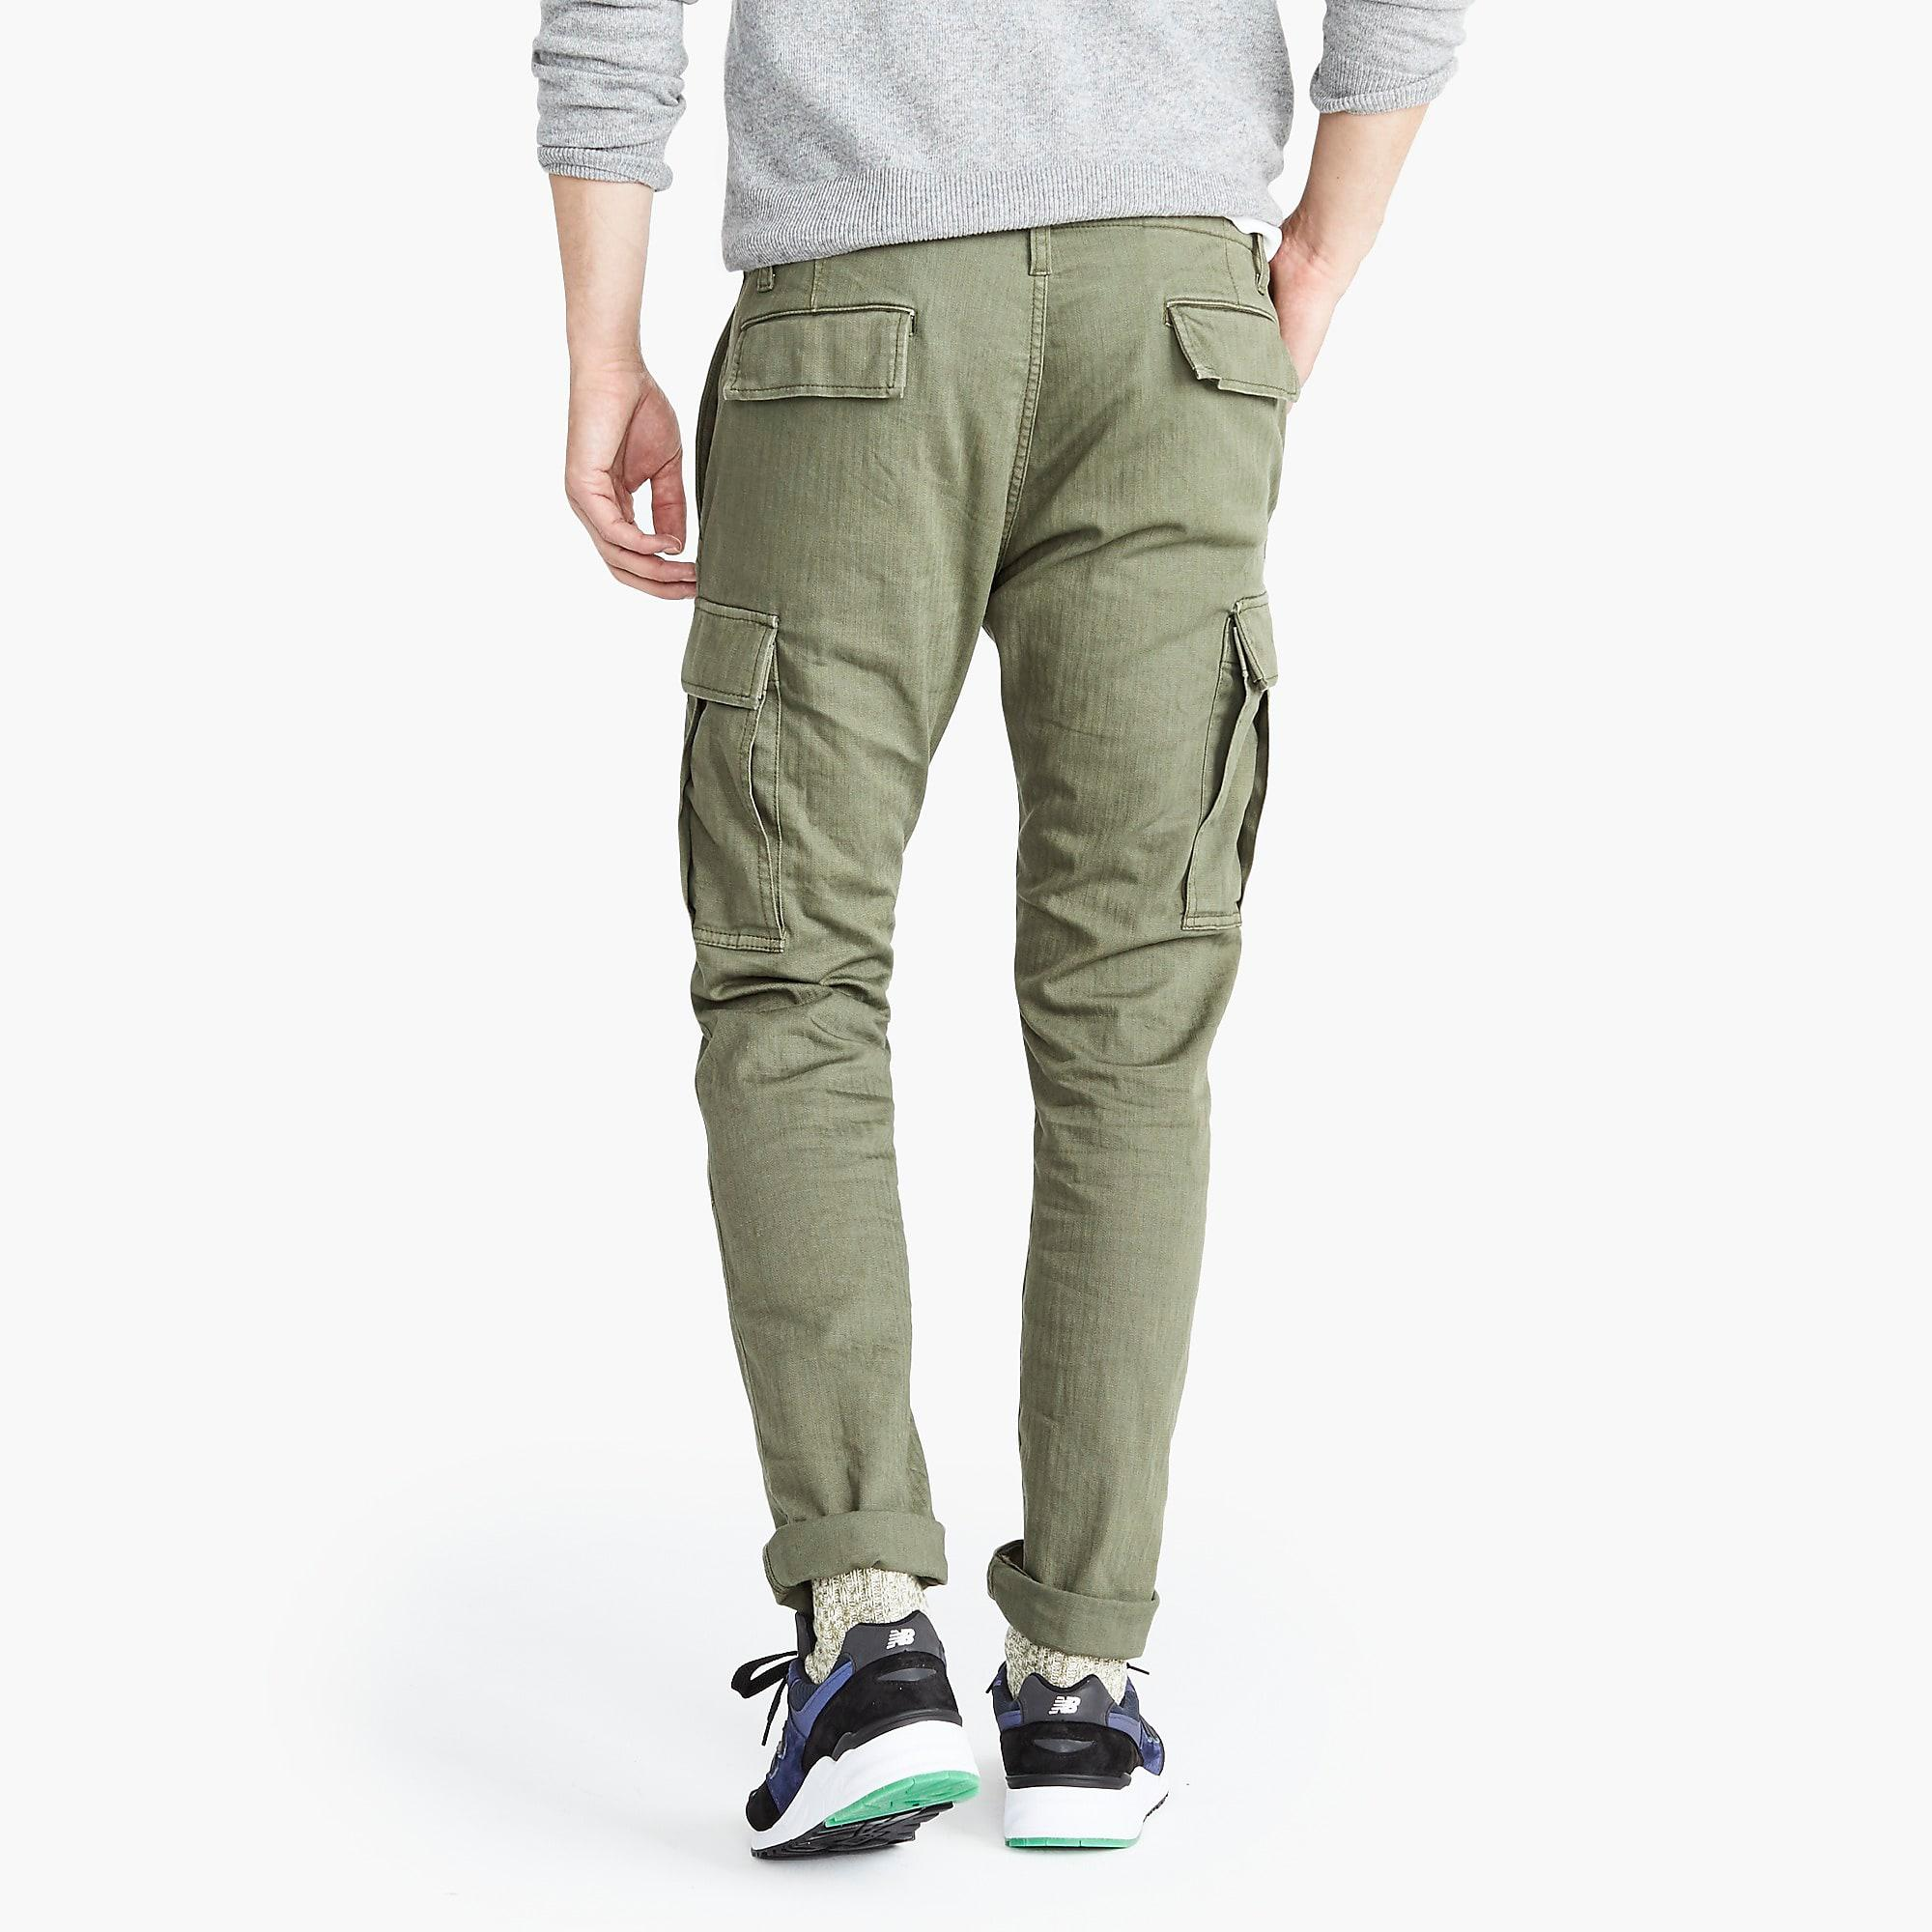 864048503aabf9 J.Crew Slim Fit Cargo Trousers in Green for Men - Lyst